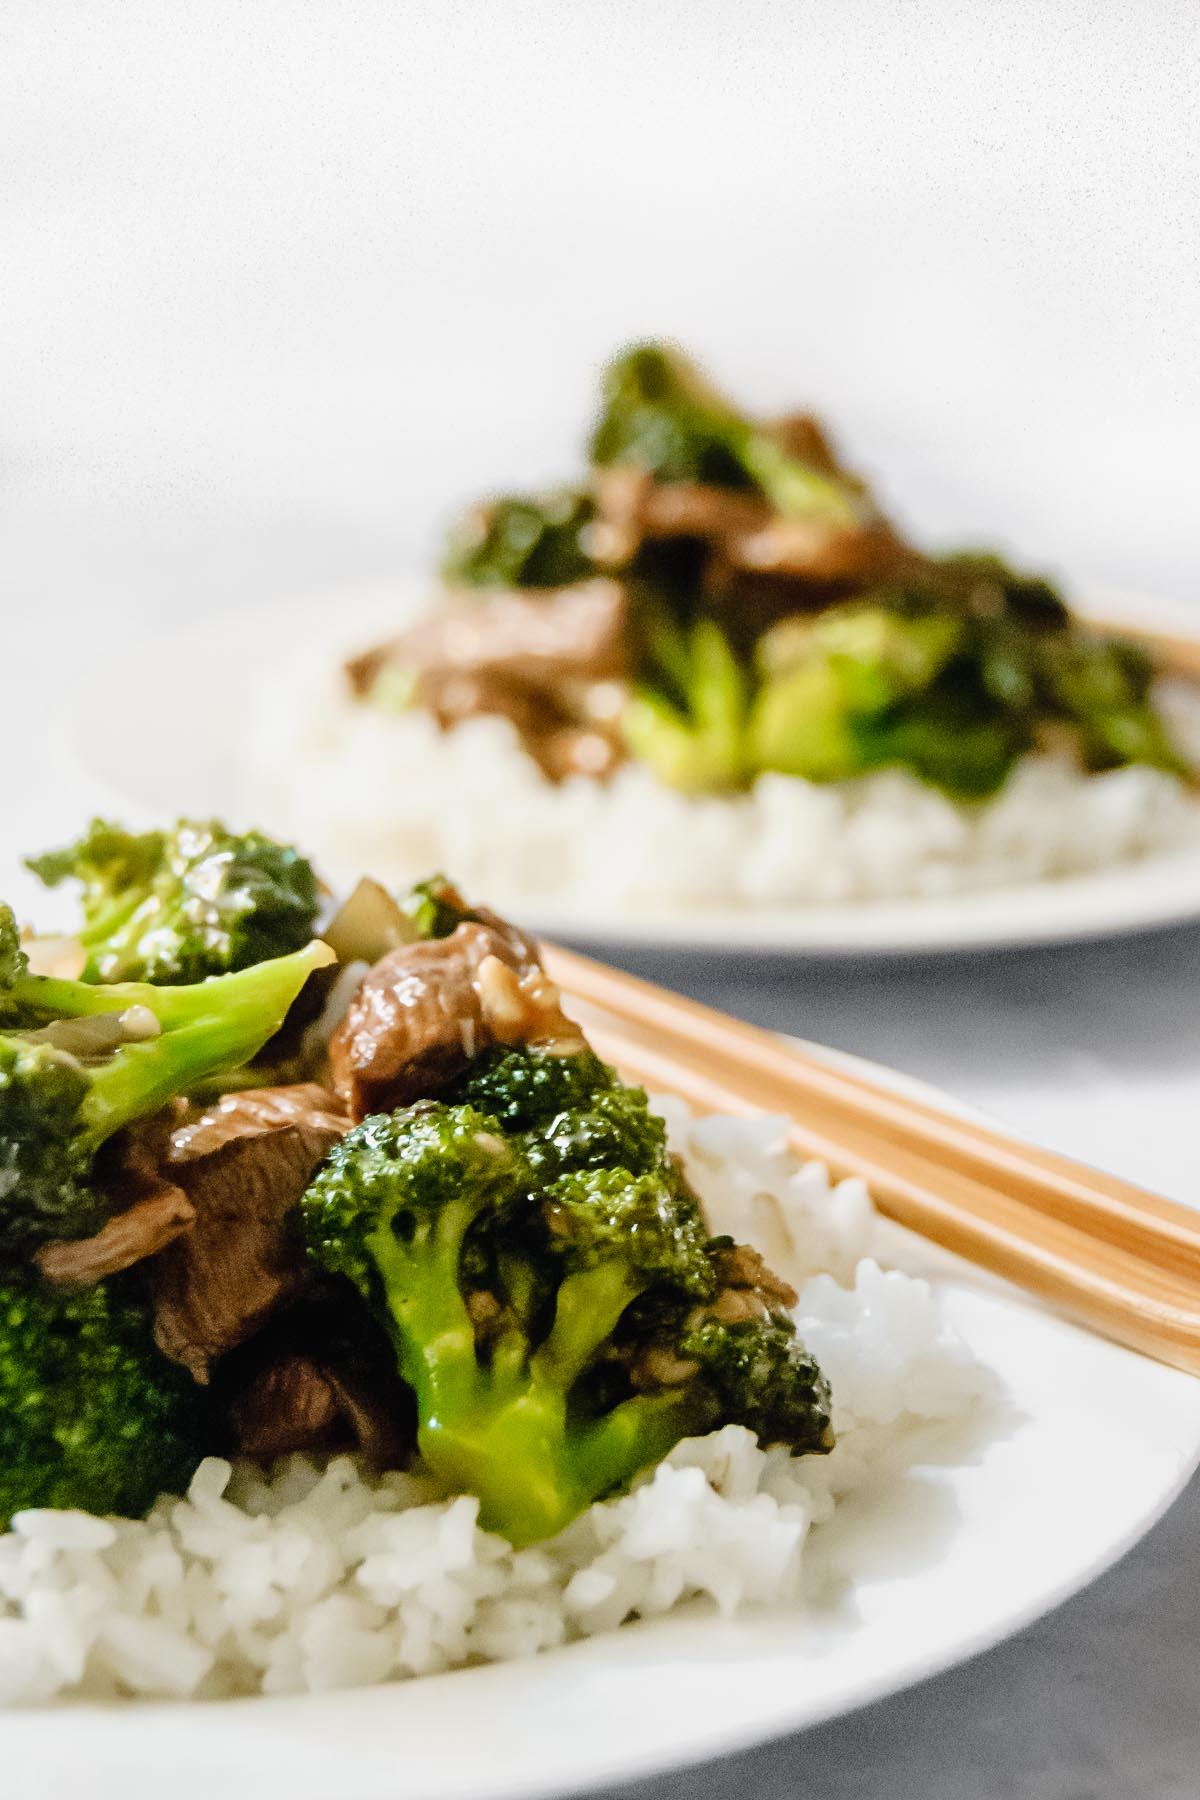 Chinese broccoli beef over rice on a white plate with chopsticks.